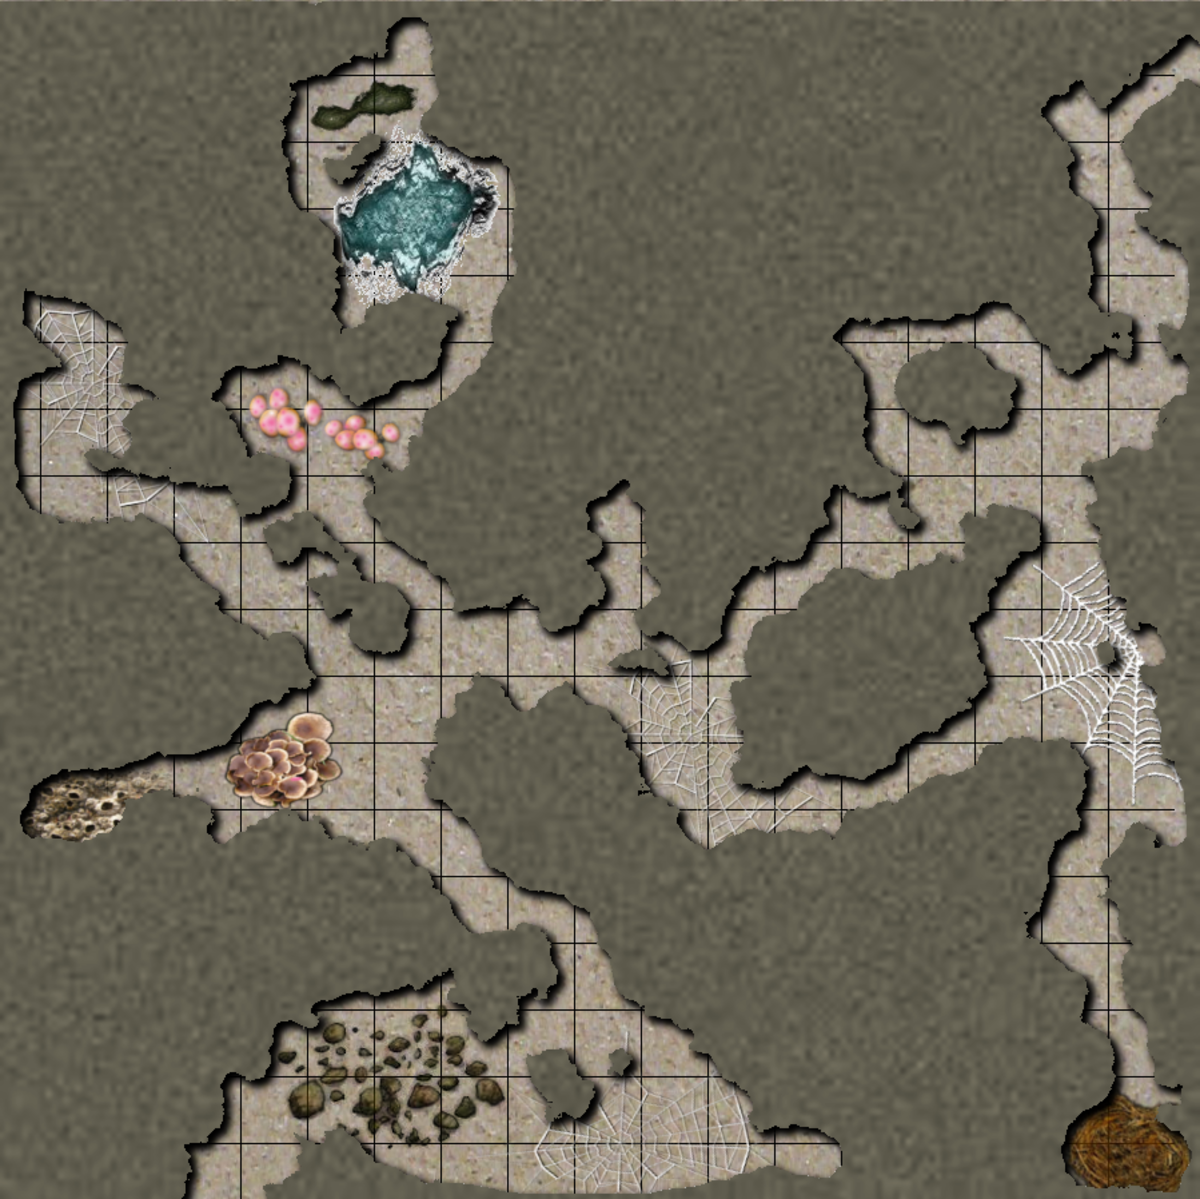 Finished maps with addons